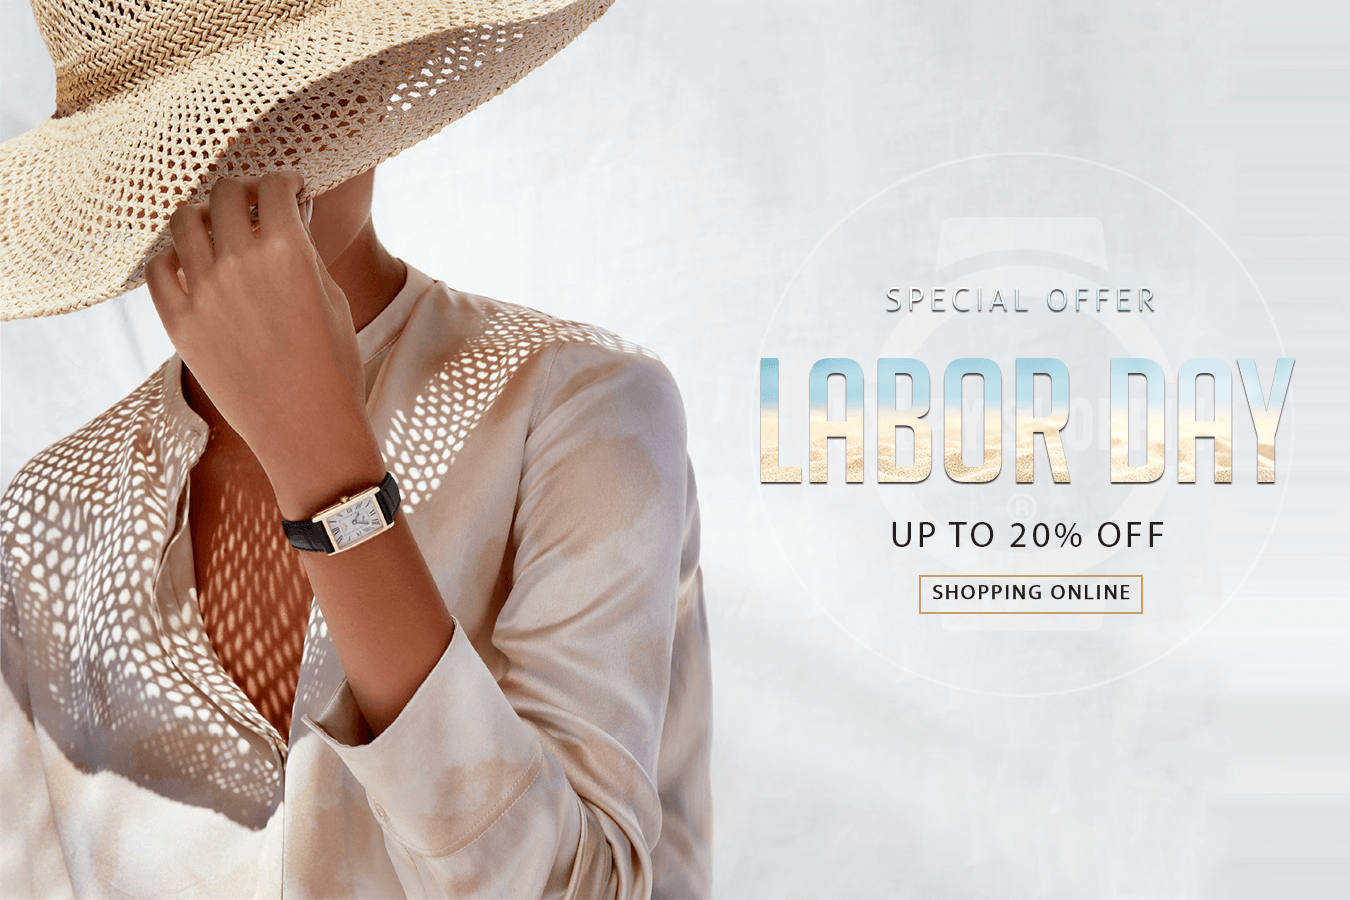 HAPPY LABOR DAY - SHOPPING WATCHES ONLINE UP TO 20% OFF